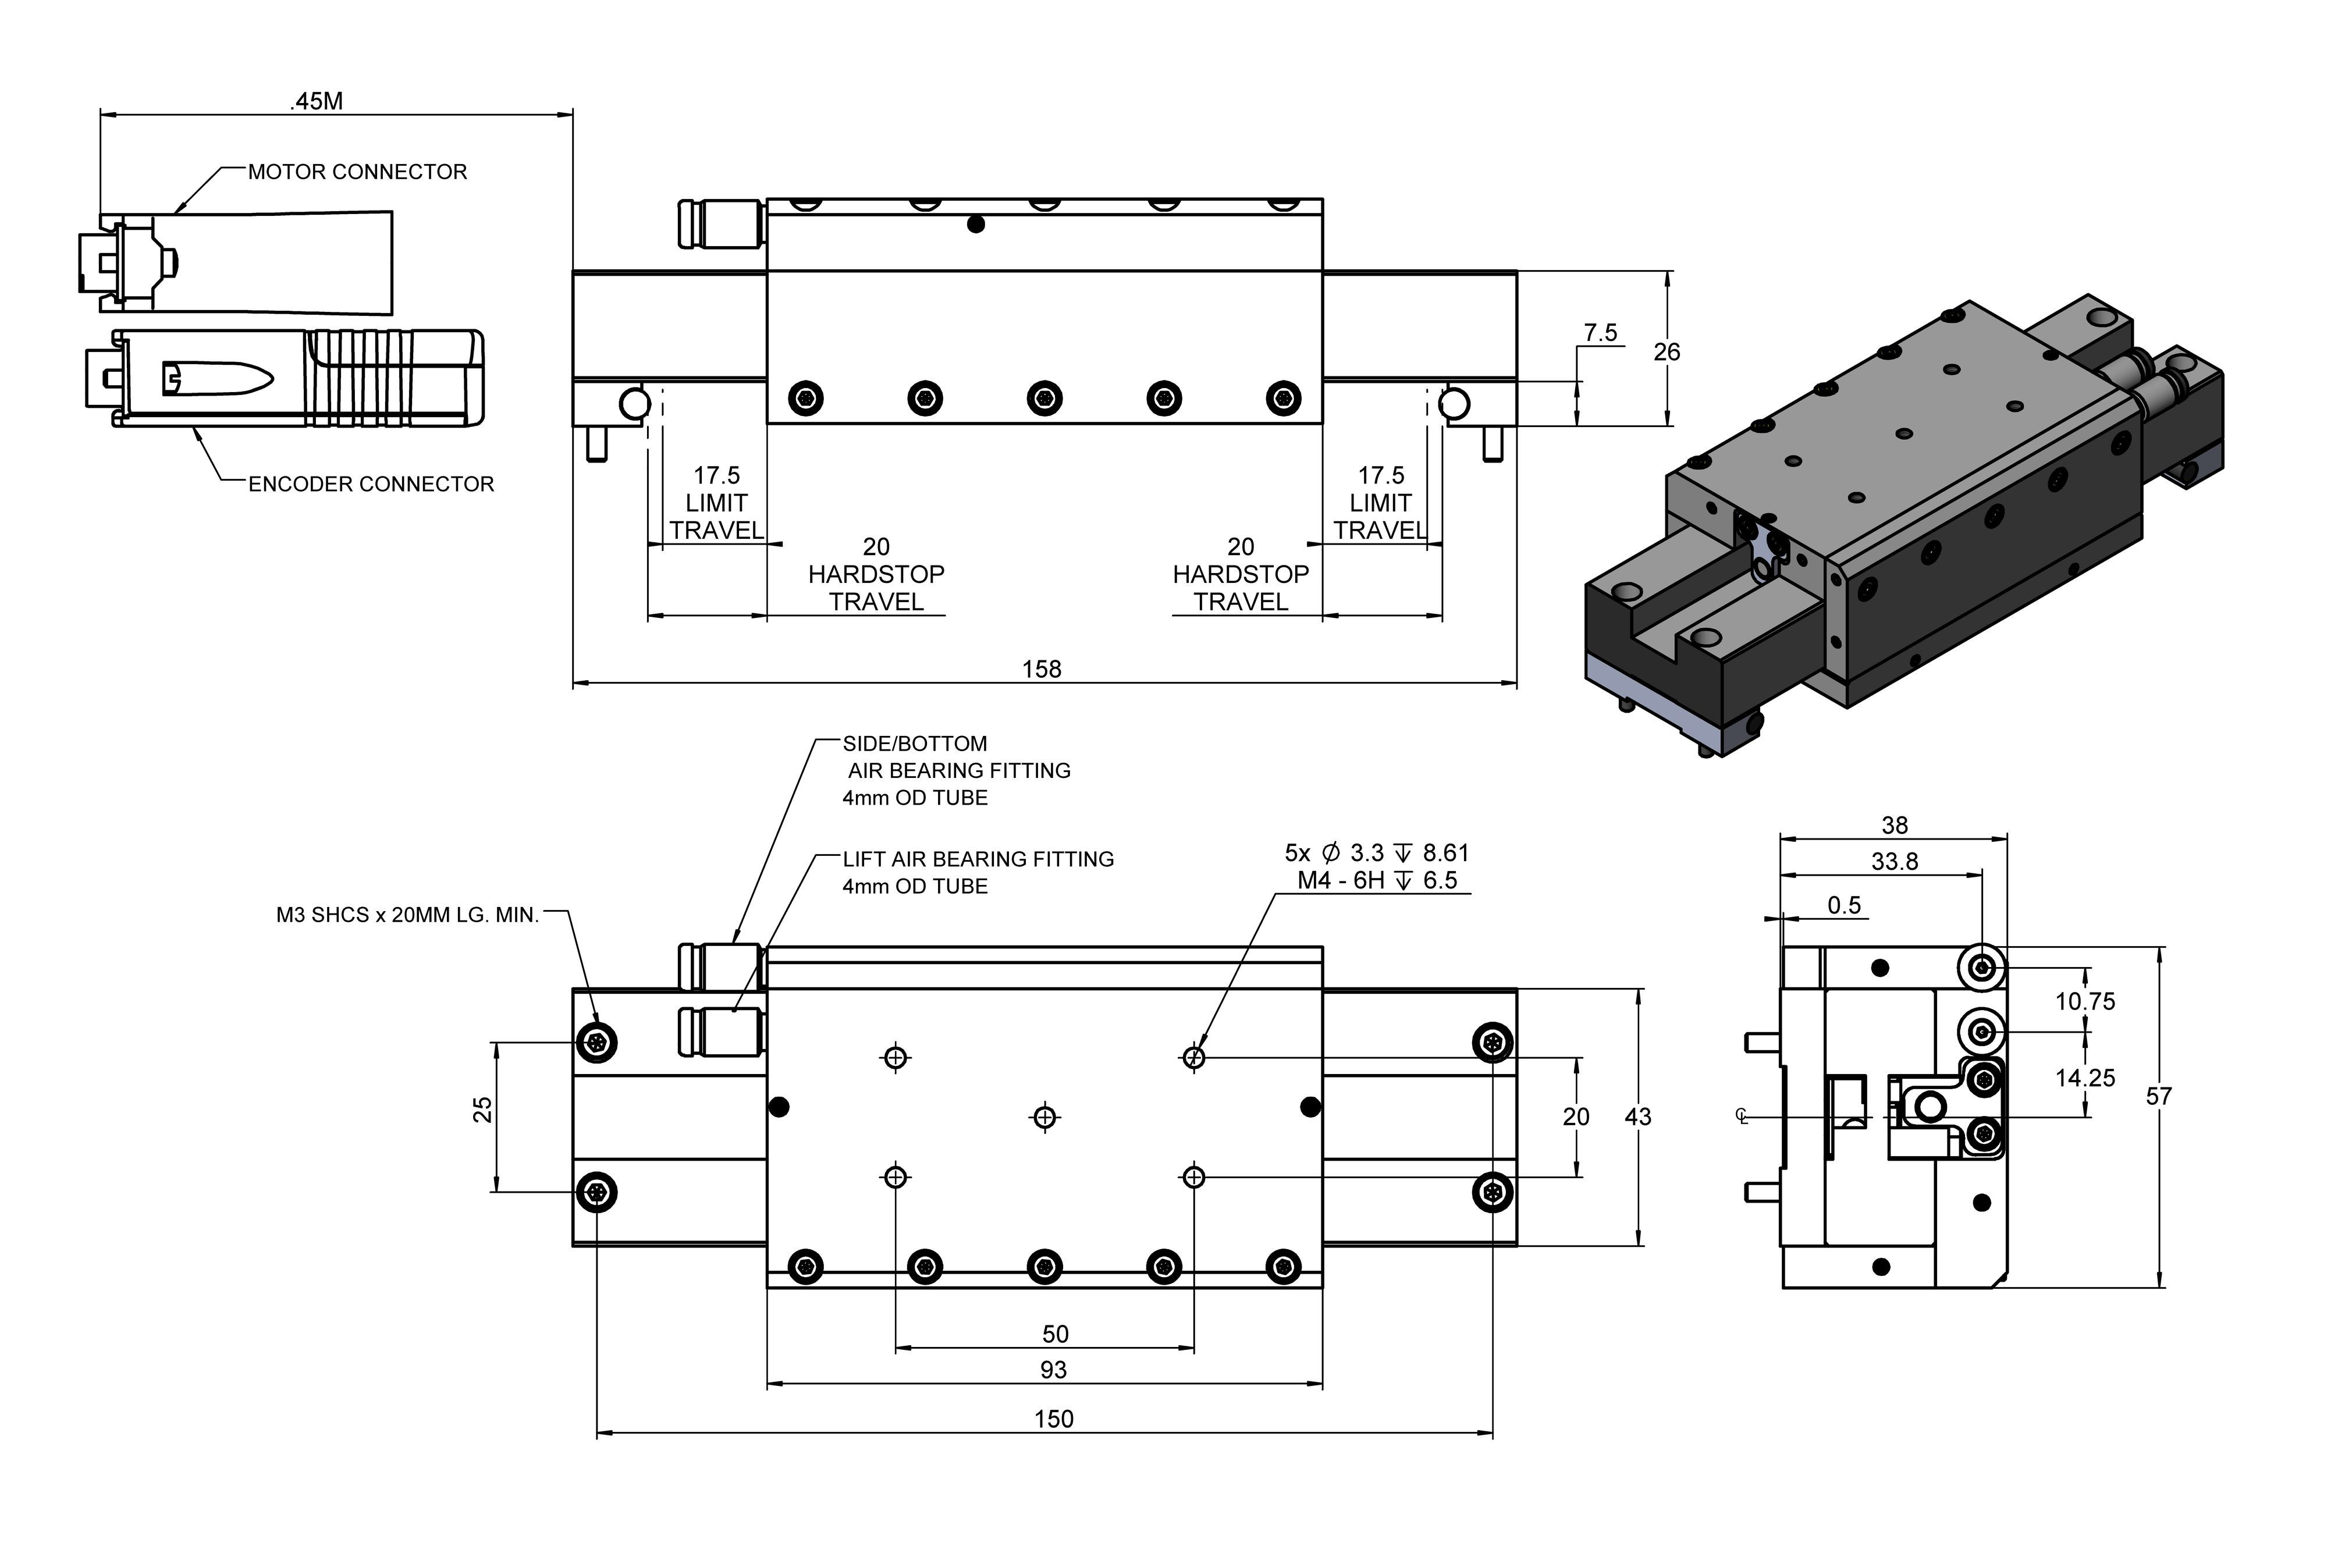 A 141 Piglide Mb Miniature Linear Stage With Air Bearings Best Combination Lock Pic16f84 Circuit Diagram Super Pi Drawing